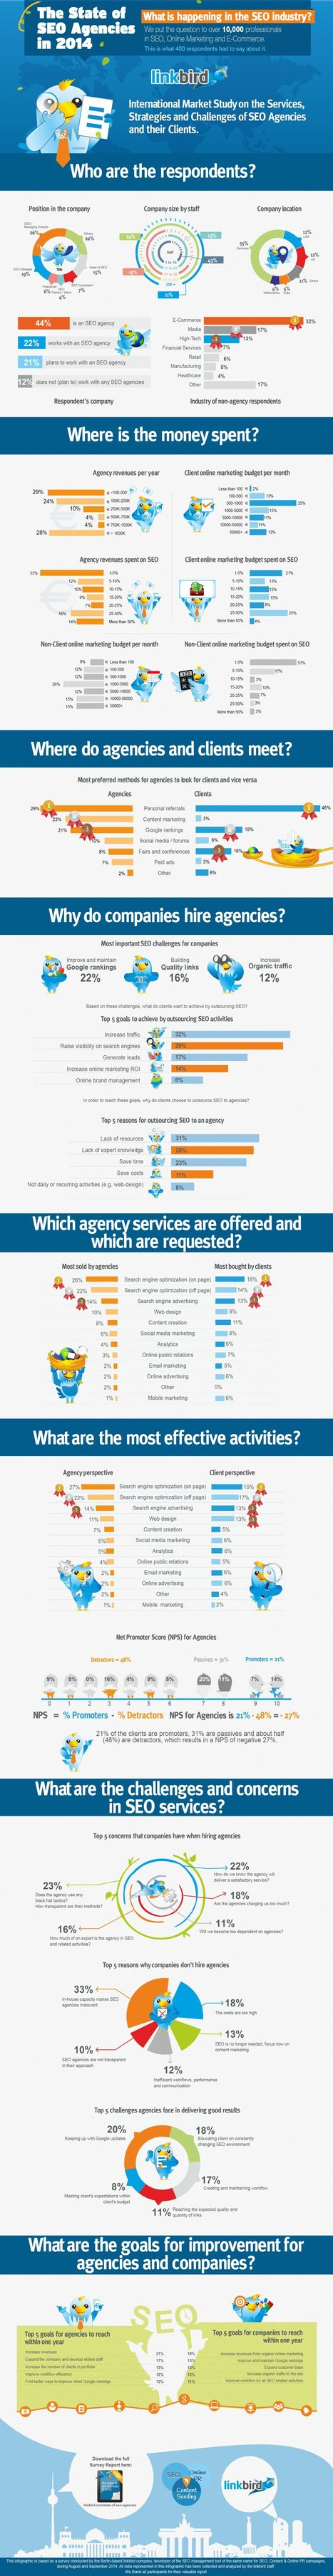 State of SEO Agencies - Infographic and Market Research - | Integrated Brand Communications | Scoop.it